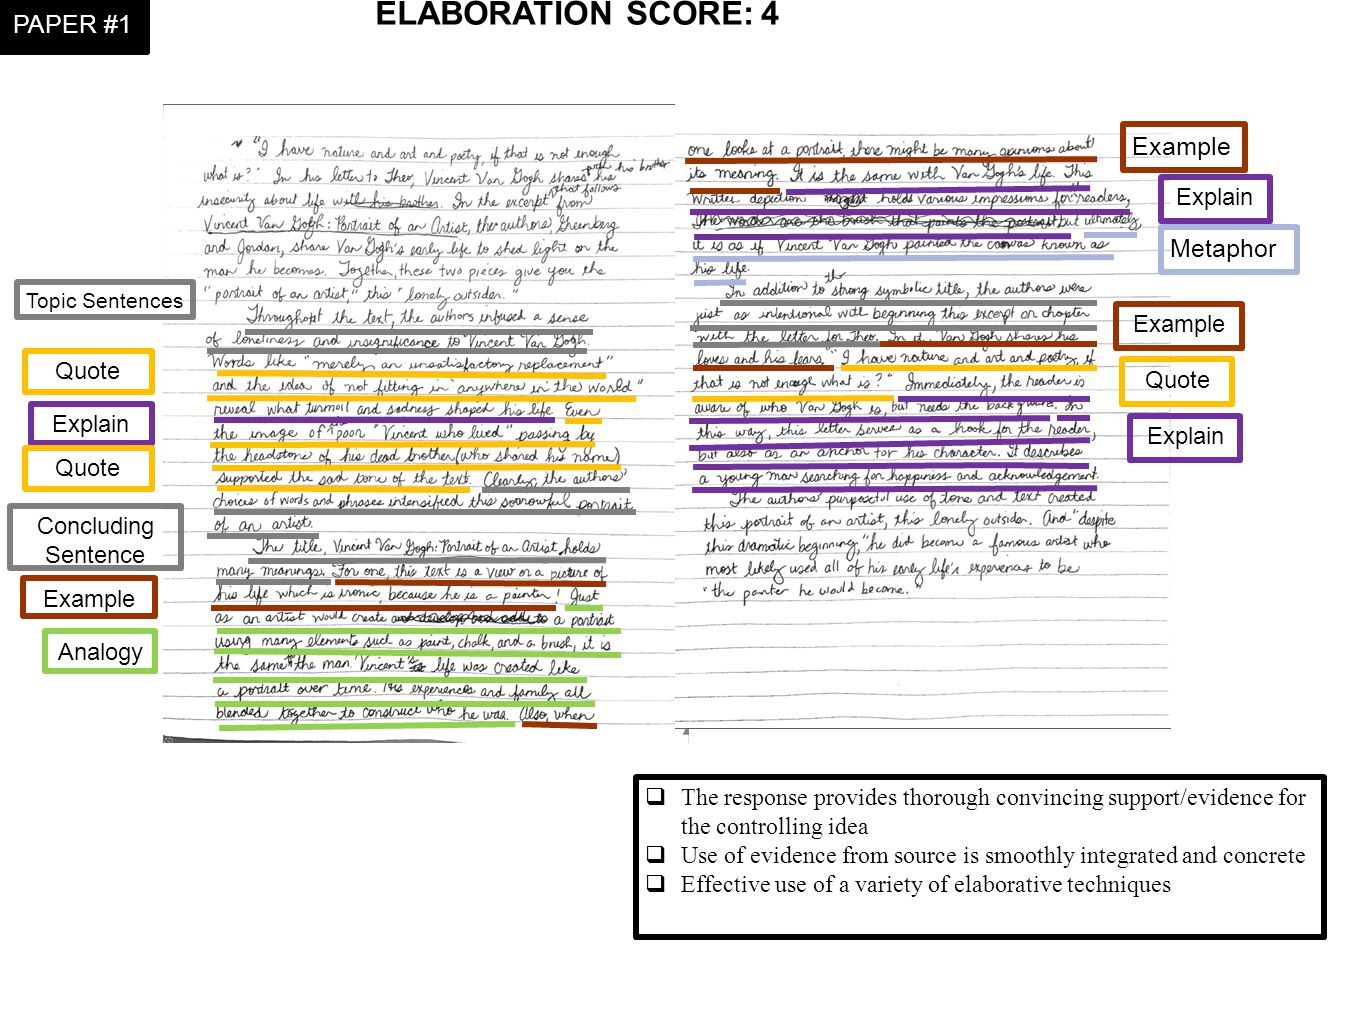 ELABORATION SCORE:4  The response provides thorough convincing support/evidence for the controlling idea  Use of evidence from source is smoothly in